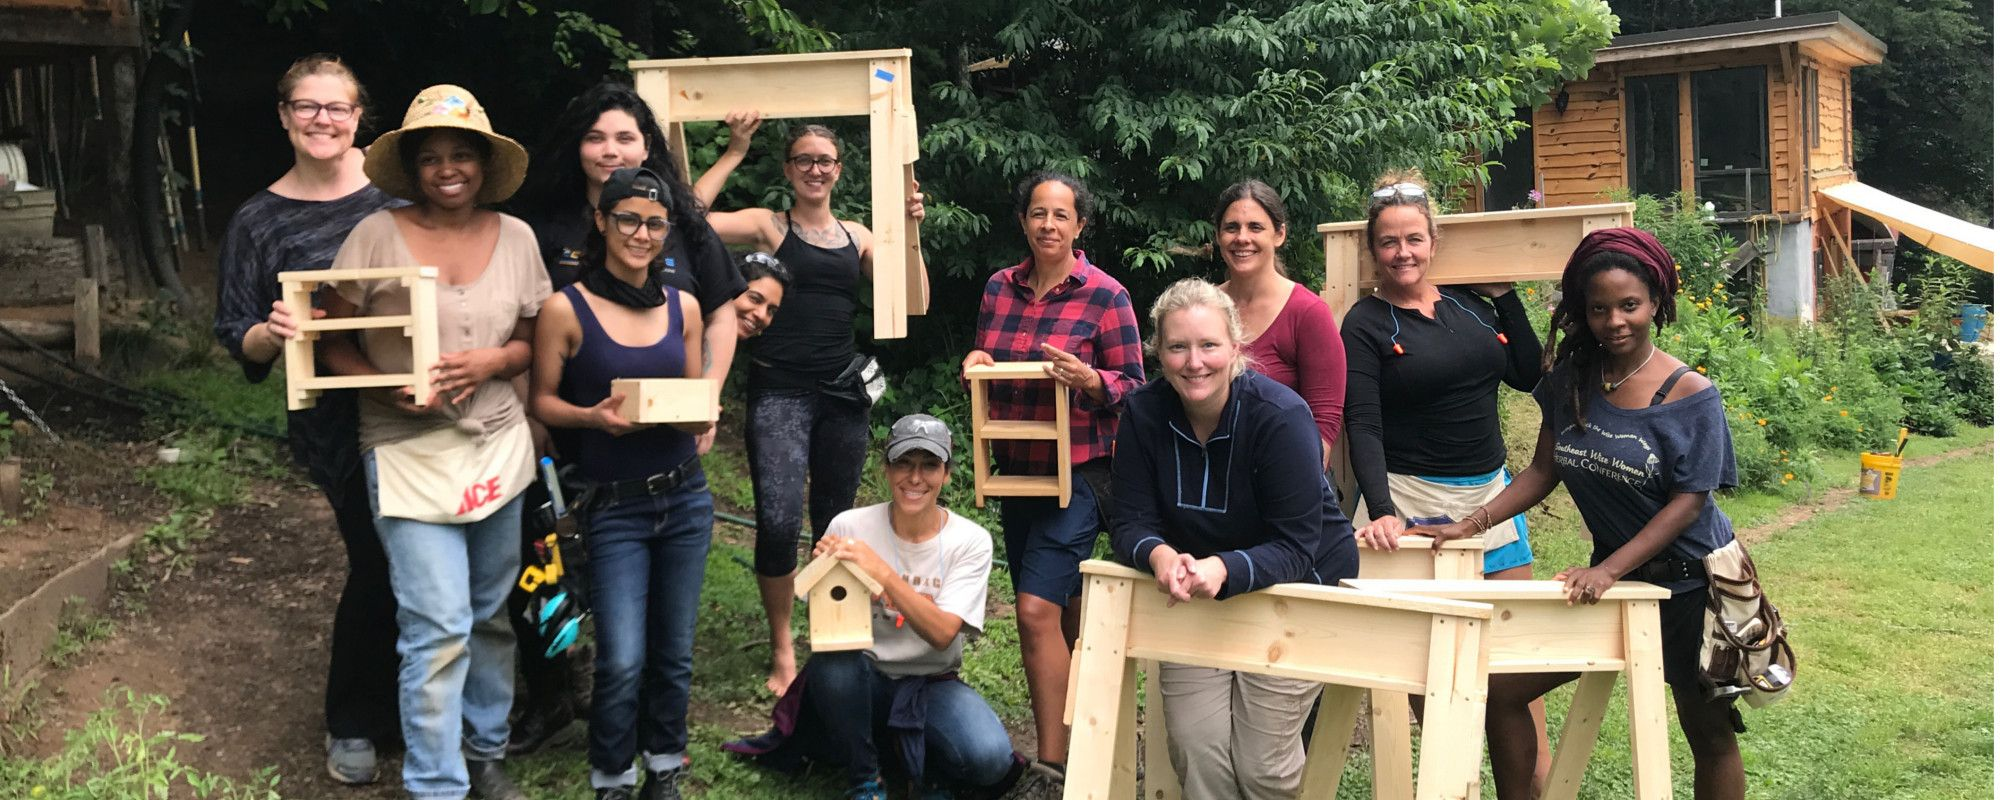 Women S Basic Carpentry And Woodworking Class 2020 Carpentry Classes Woodworking Classes Carpentry